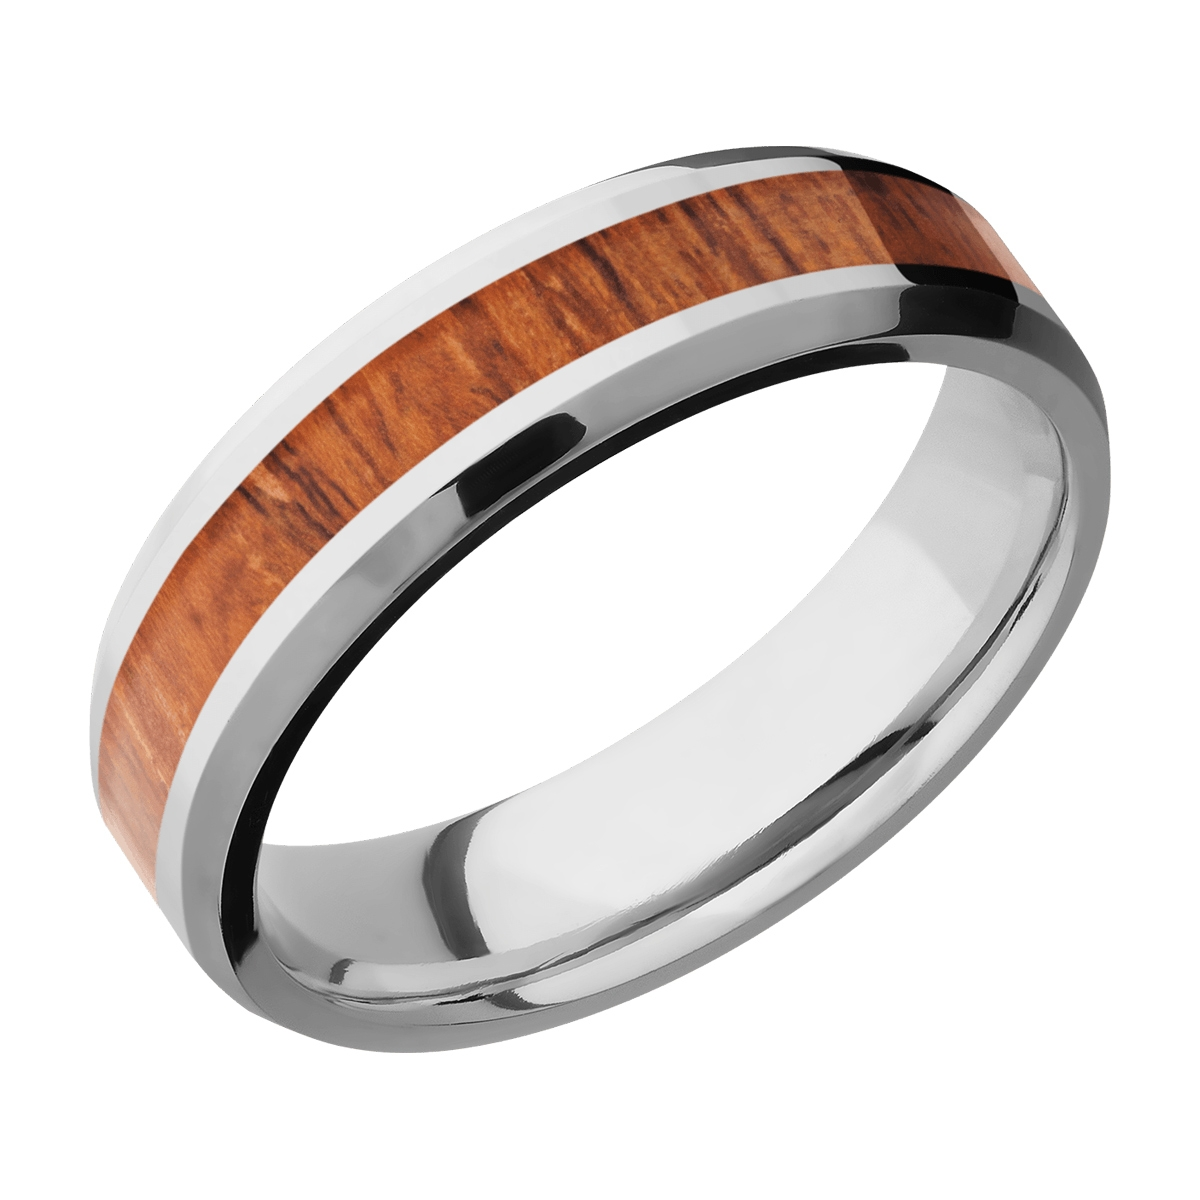 Lashbrook CC6B13(NS)/HARDWOOD Cobalt Chrome Wedding Ring or Band